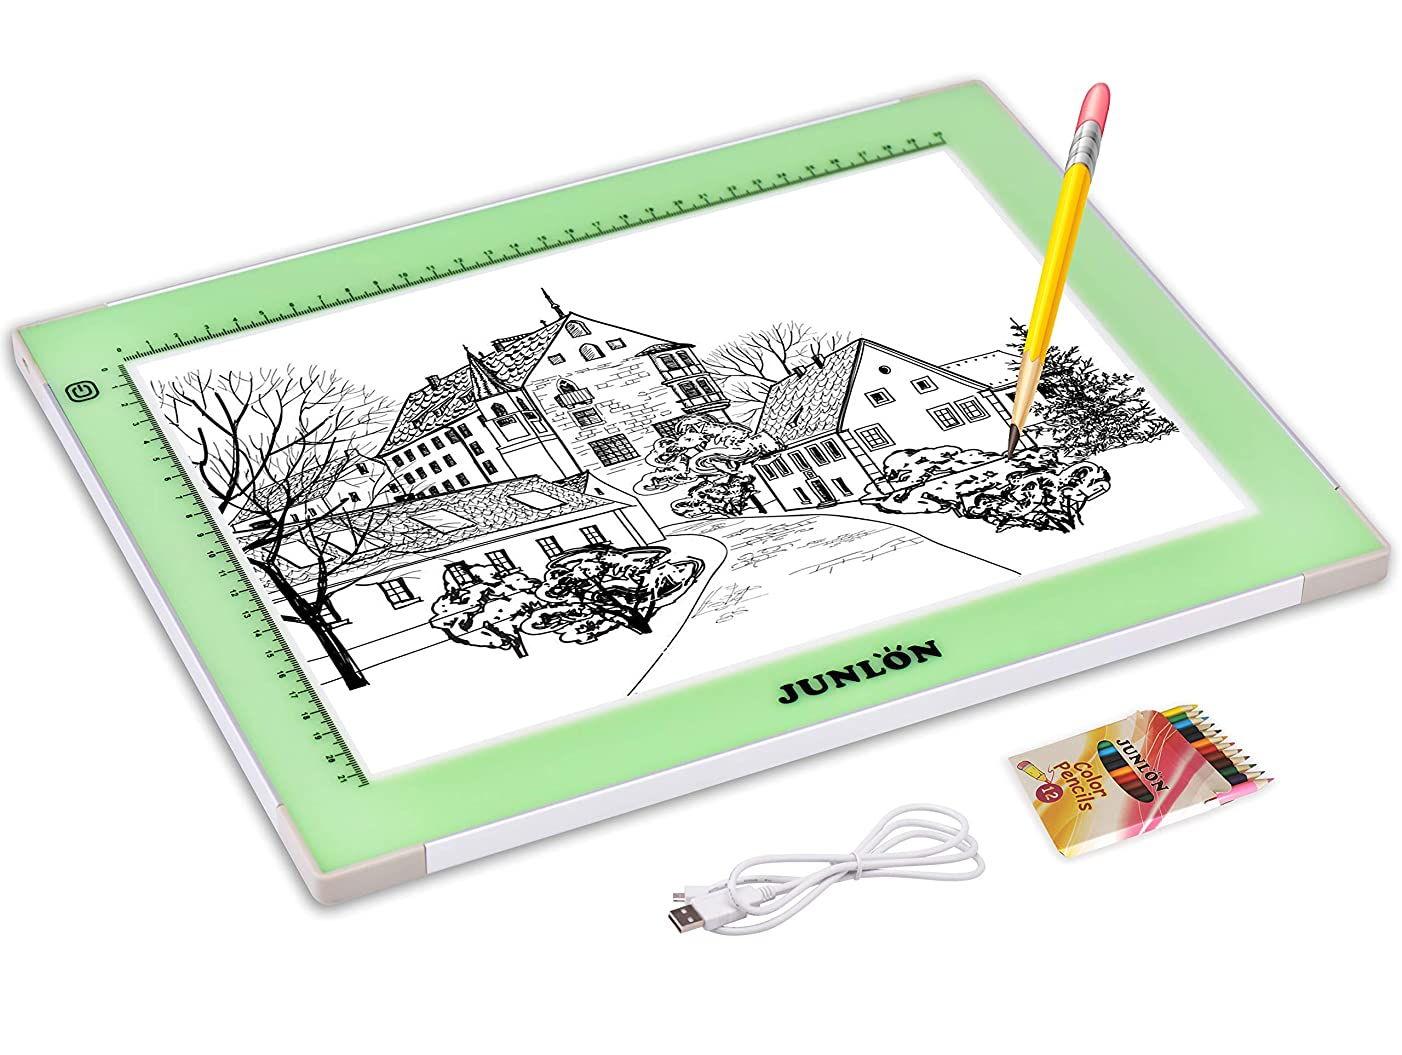 JUNLON Aluminum A4 USB LED Light Pad Light Box Light Table Tracing Board,Adjustable Brightness Ultra-Slim Led Pad Light for Weeding Vinyl,Drawing,Artcraft,Sketching,5D Diamond Painting Full Drill